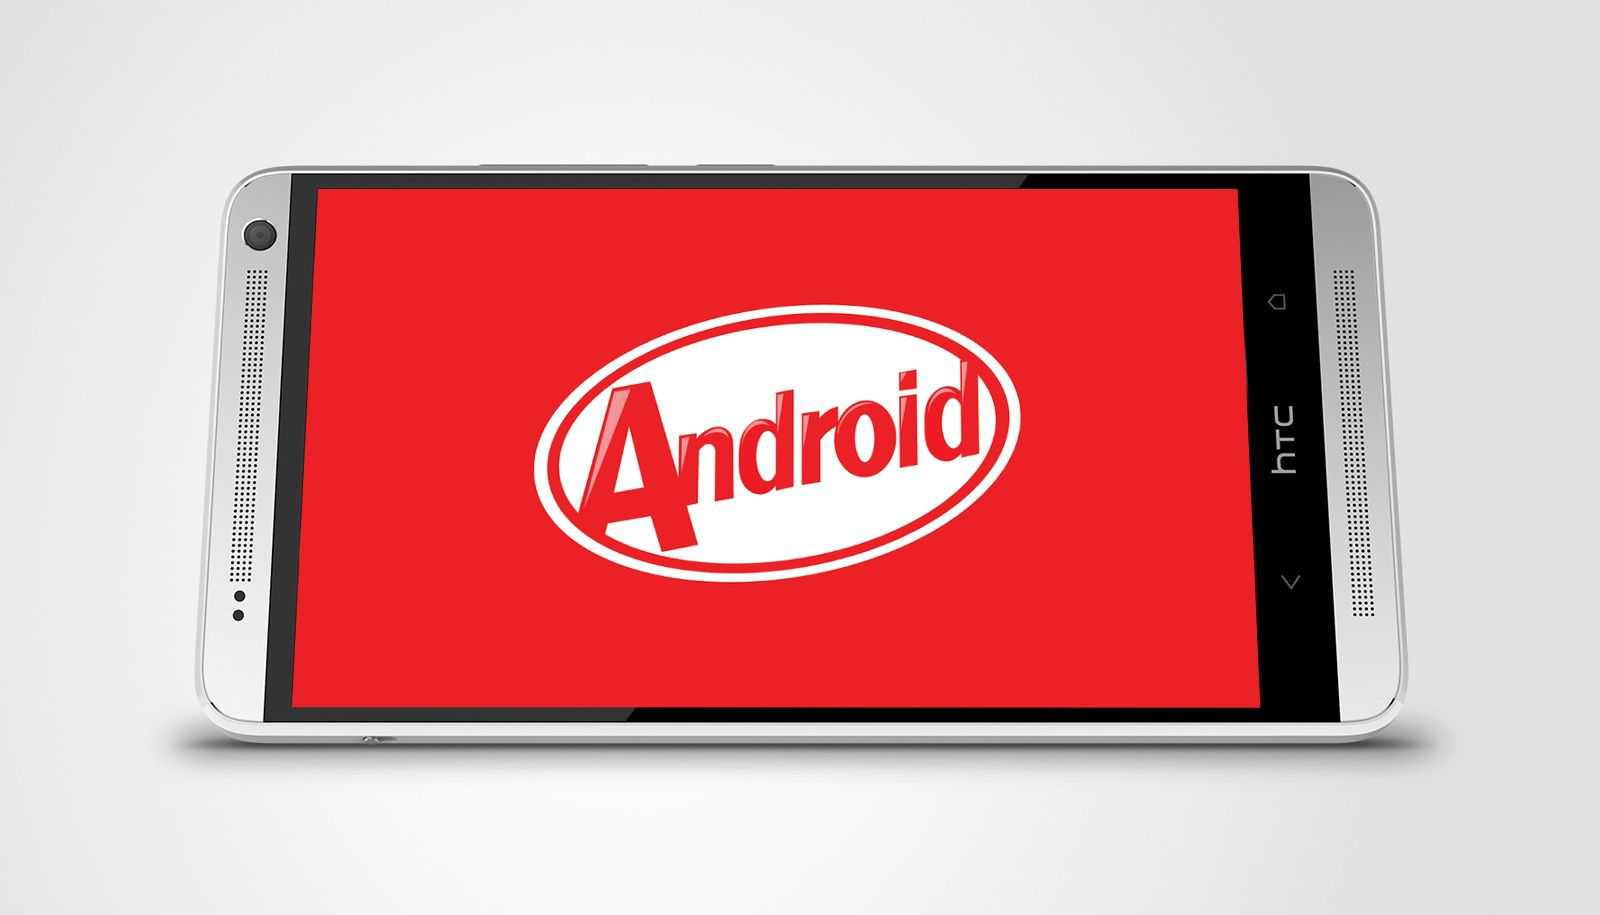 HTC One Android 4.4.2 KitKat | Iniziato il rollout firmware 4.19.401.9